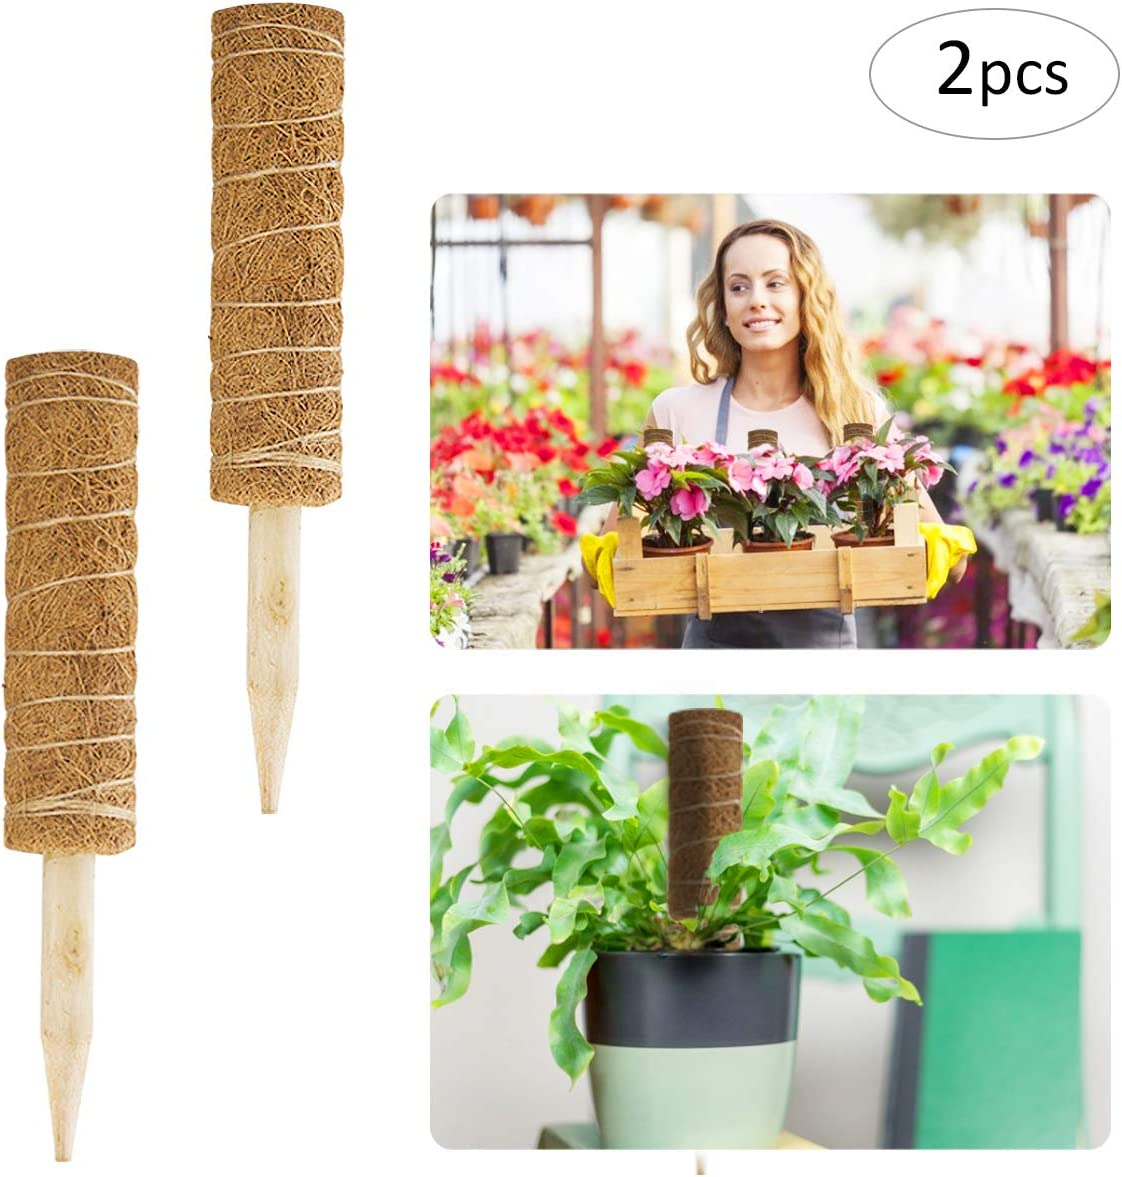 penta Coir Totem Pole Coconut Poles Climbing Plants Support Stake Pole Gardening Palm Stick for Climbing Plants Vines and Creepers Moss Pole for House Plants Support